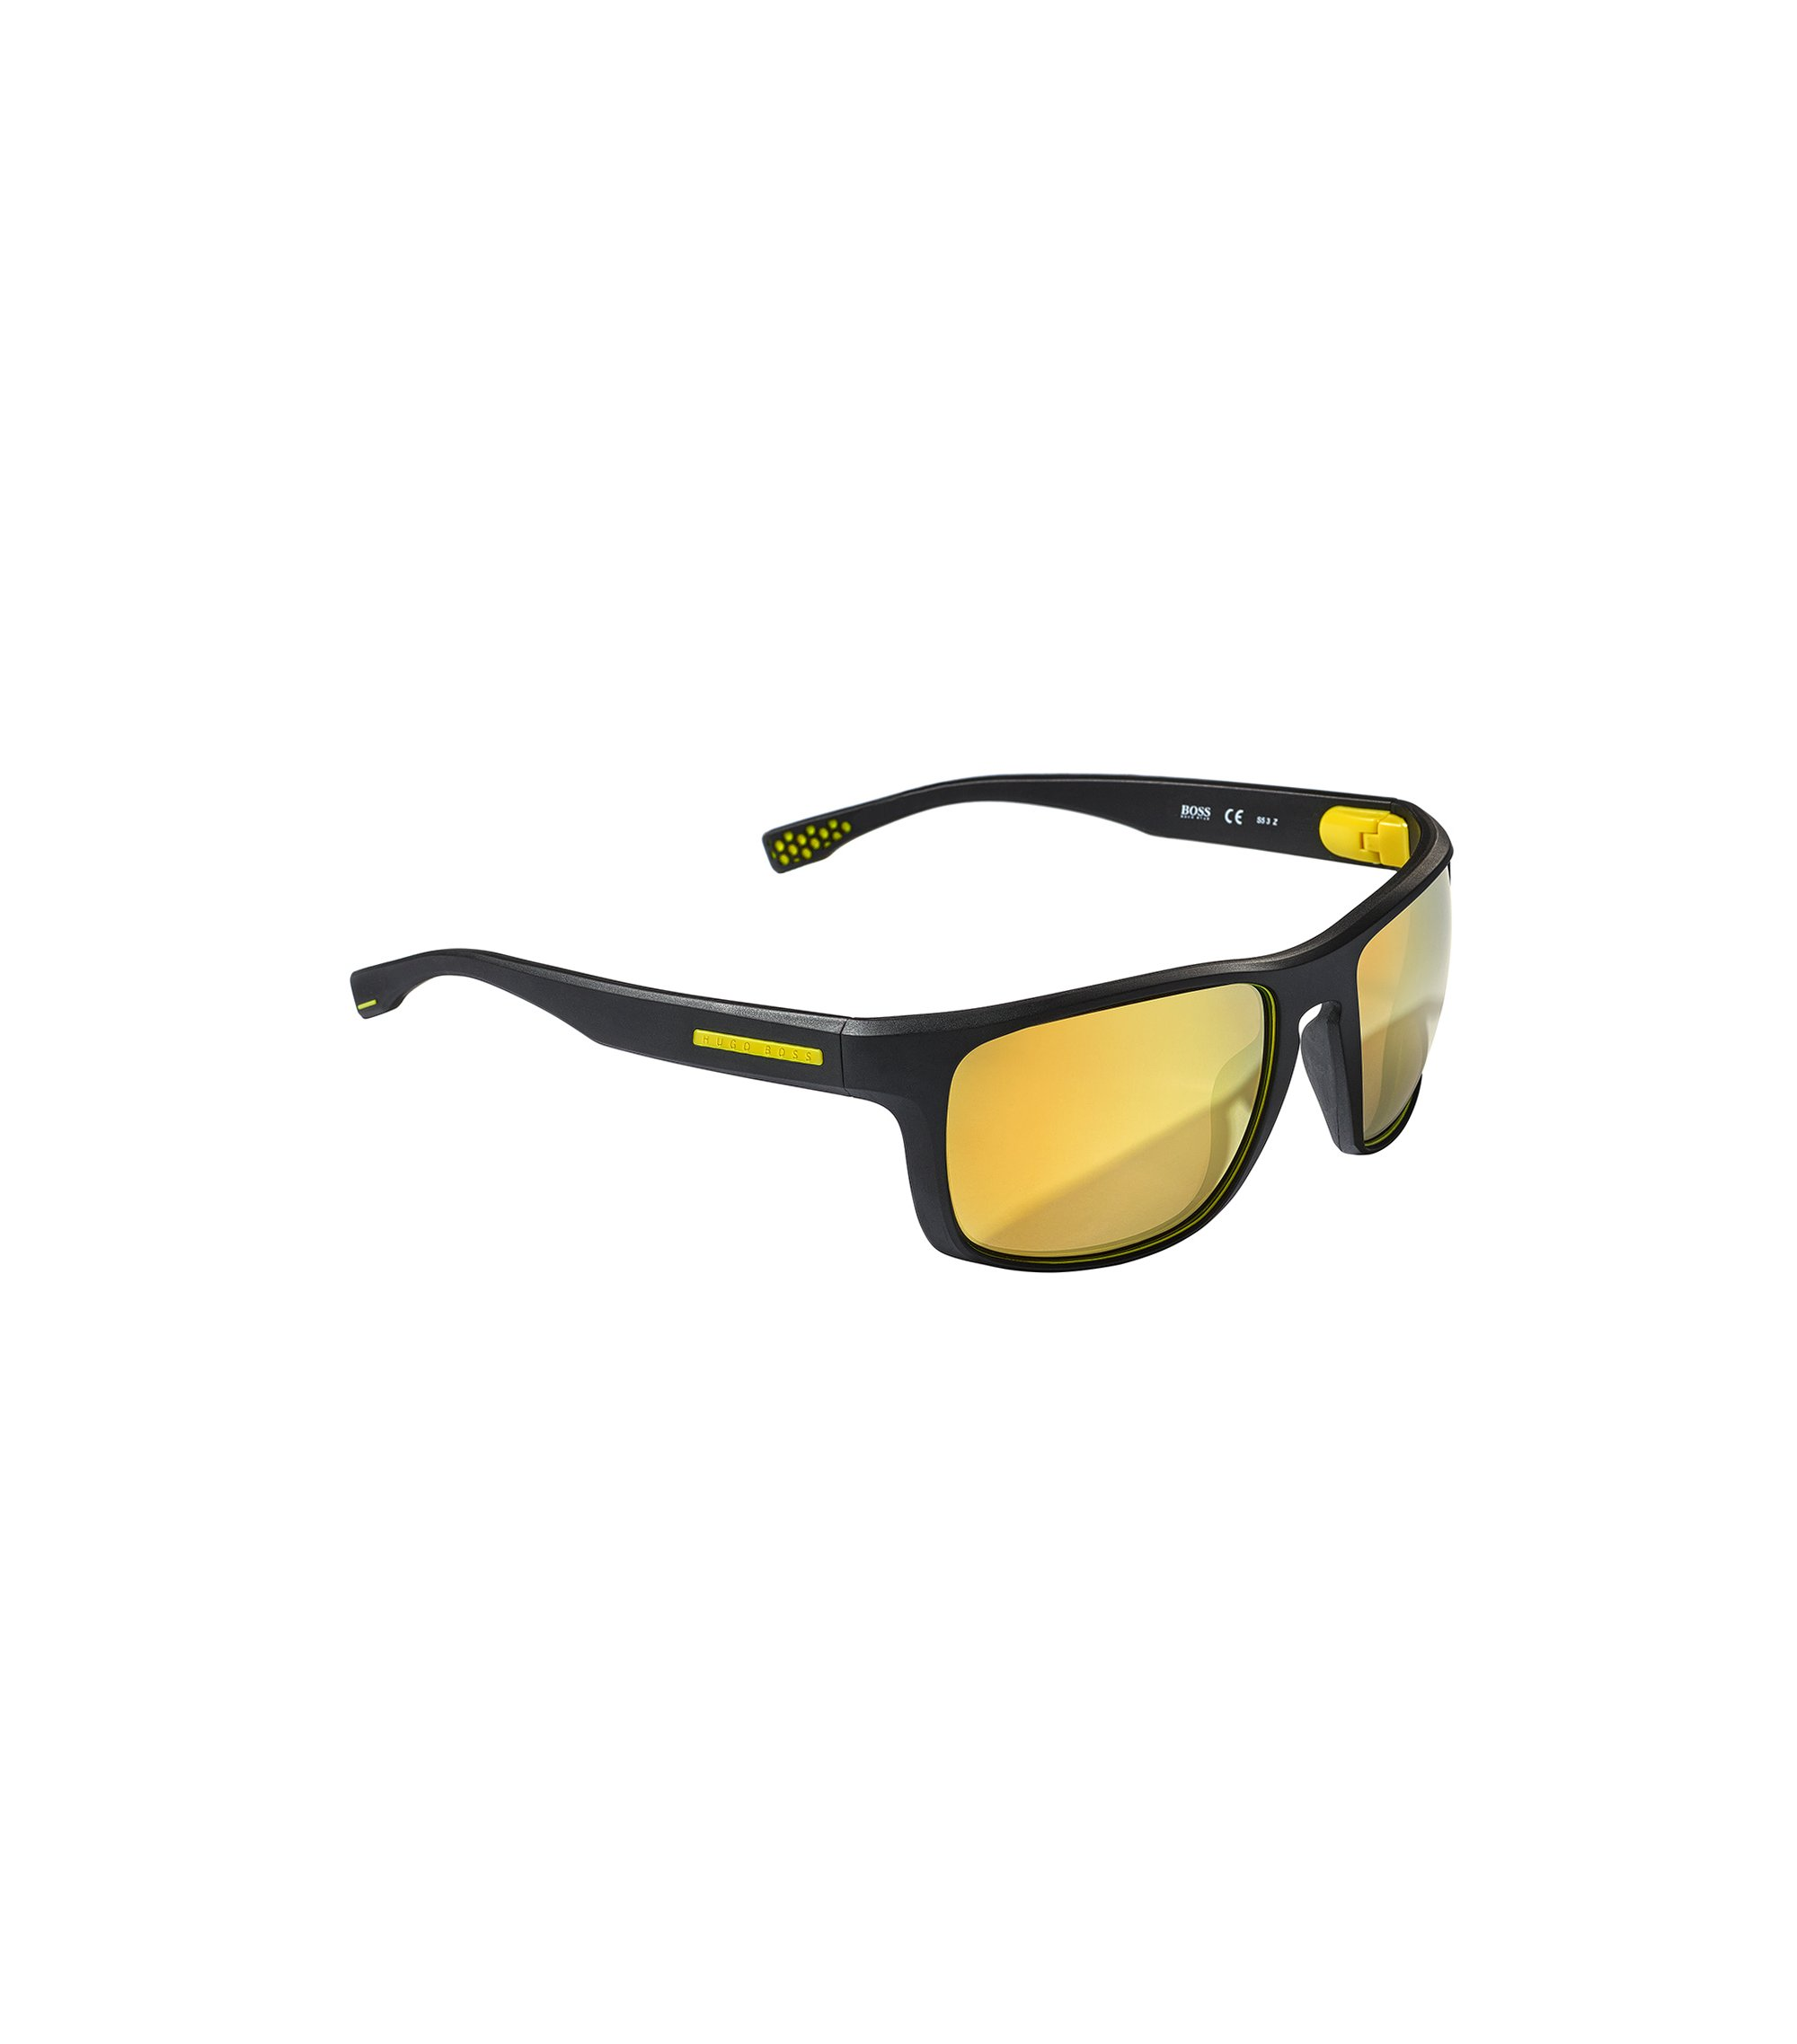 Mirror Lens Rectangular Sunglasses | BOSS 0800S, Assorted-Pre-Pack